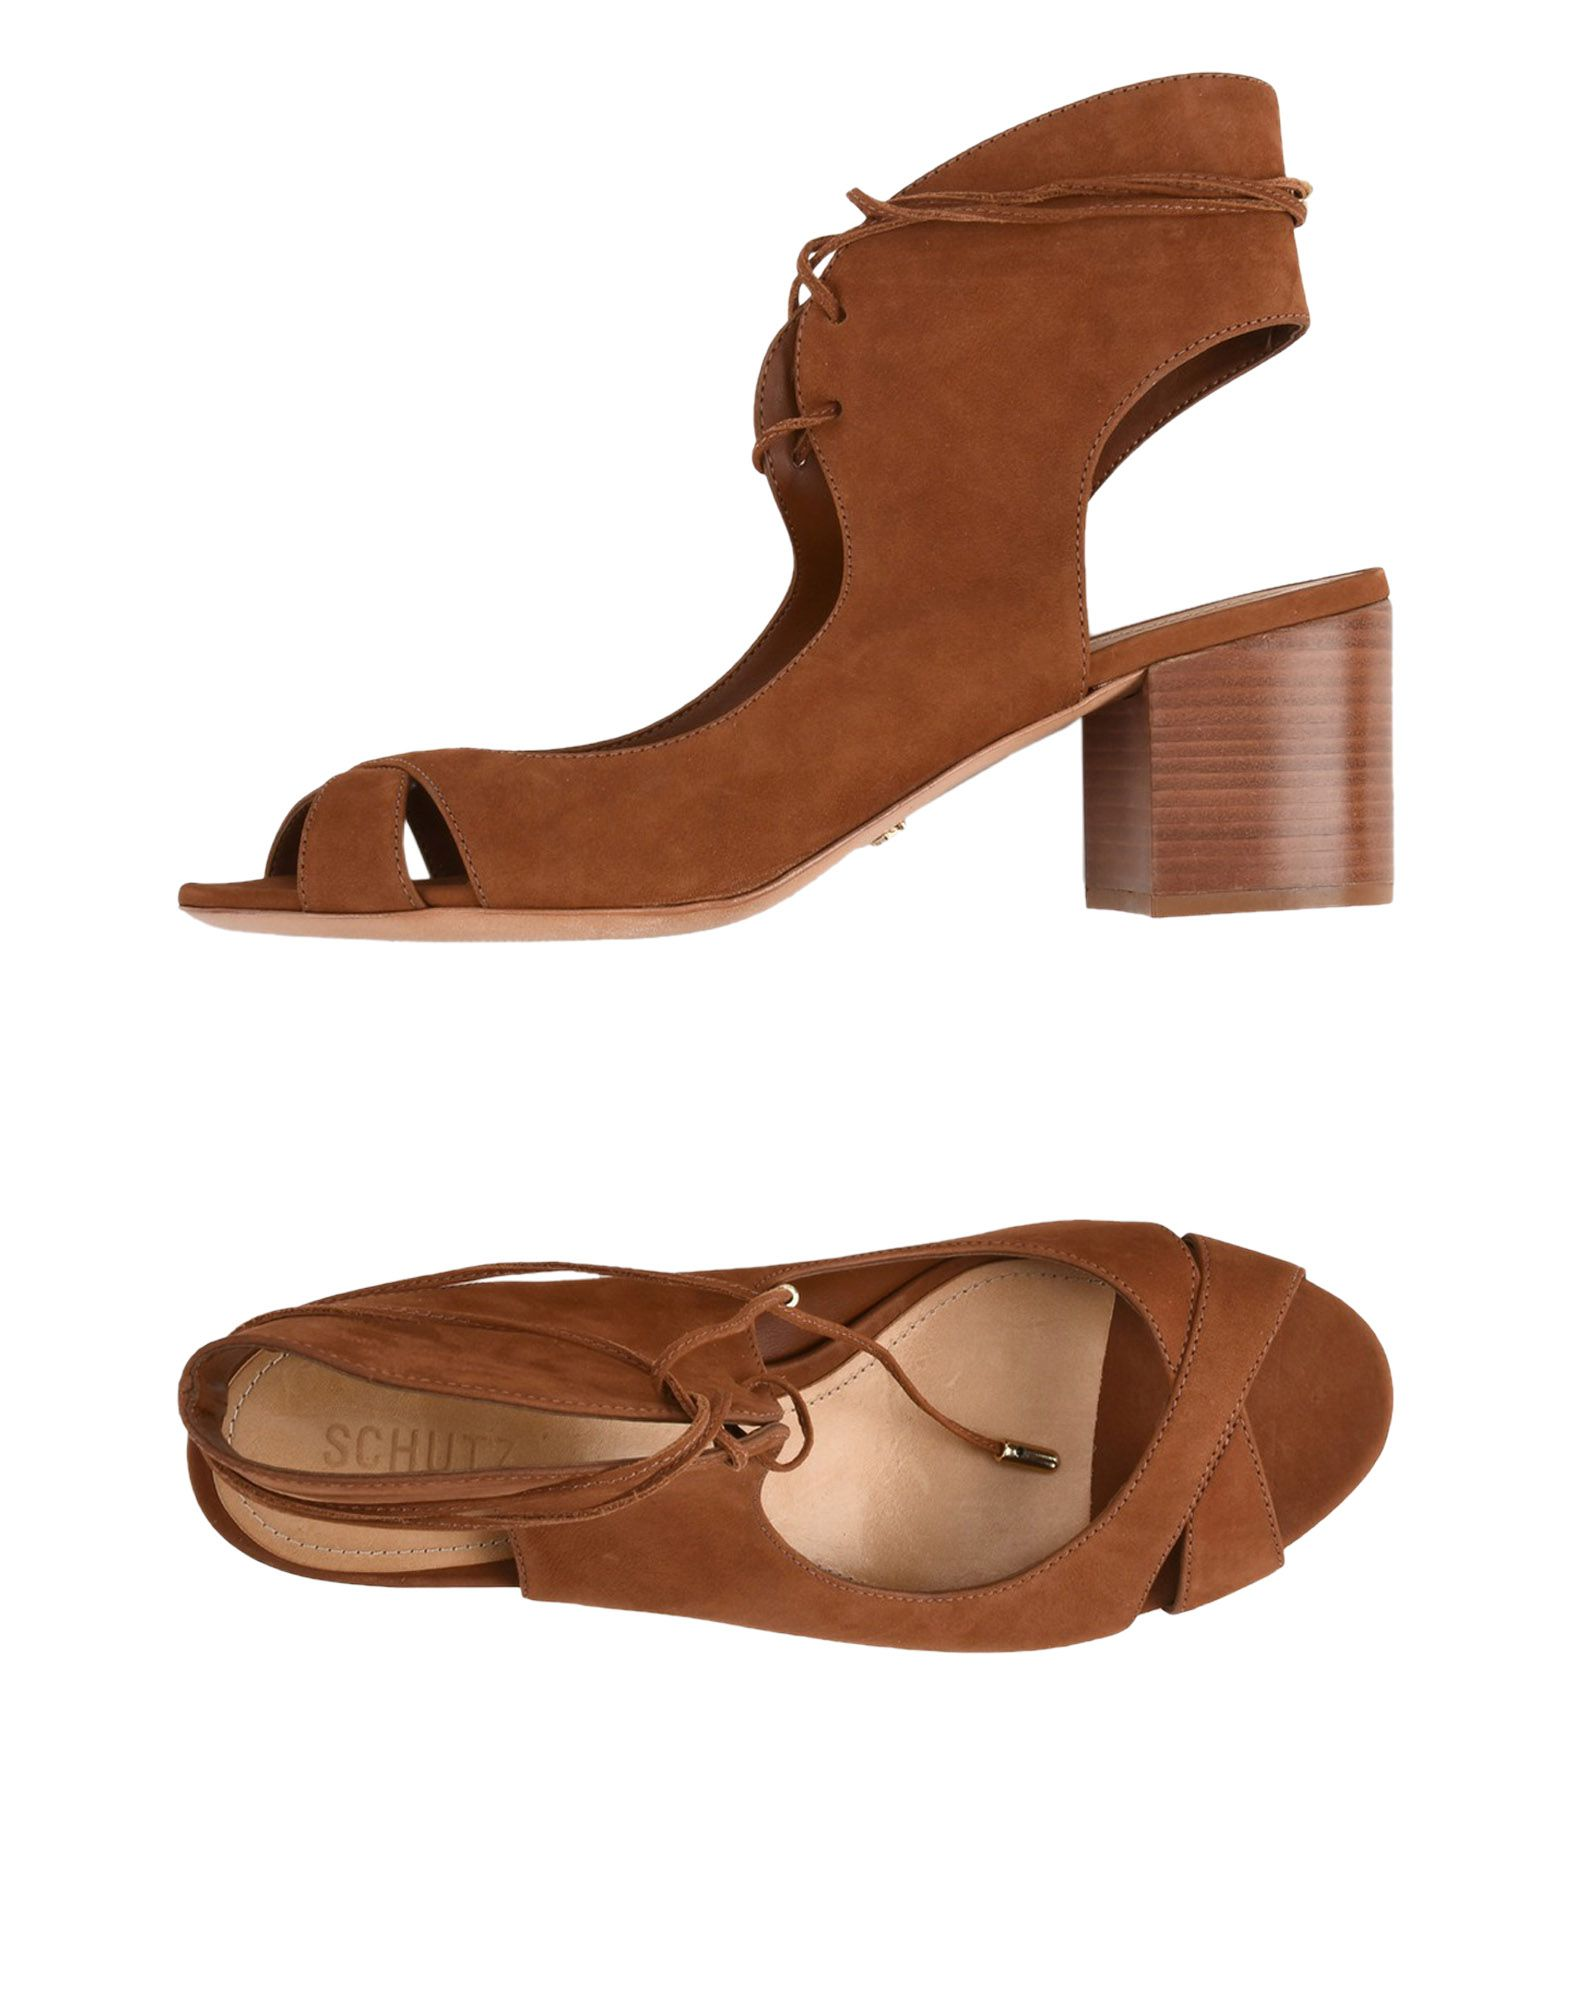 Schutz Sandals - Women Schutz Sandals online - on  United Kingdom - online 11471348RD f2d4f6